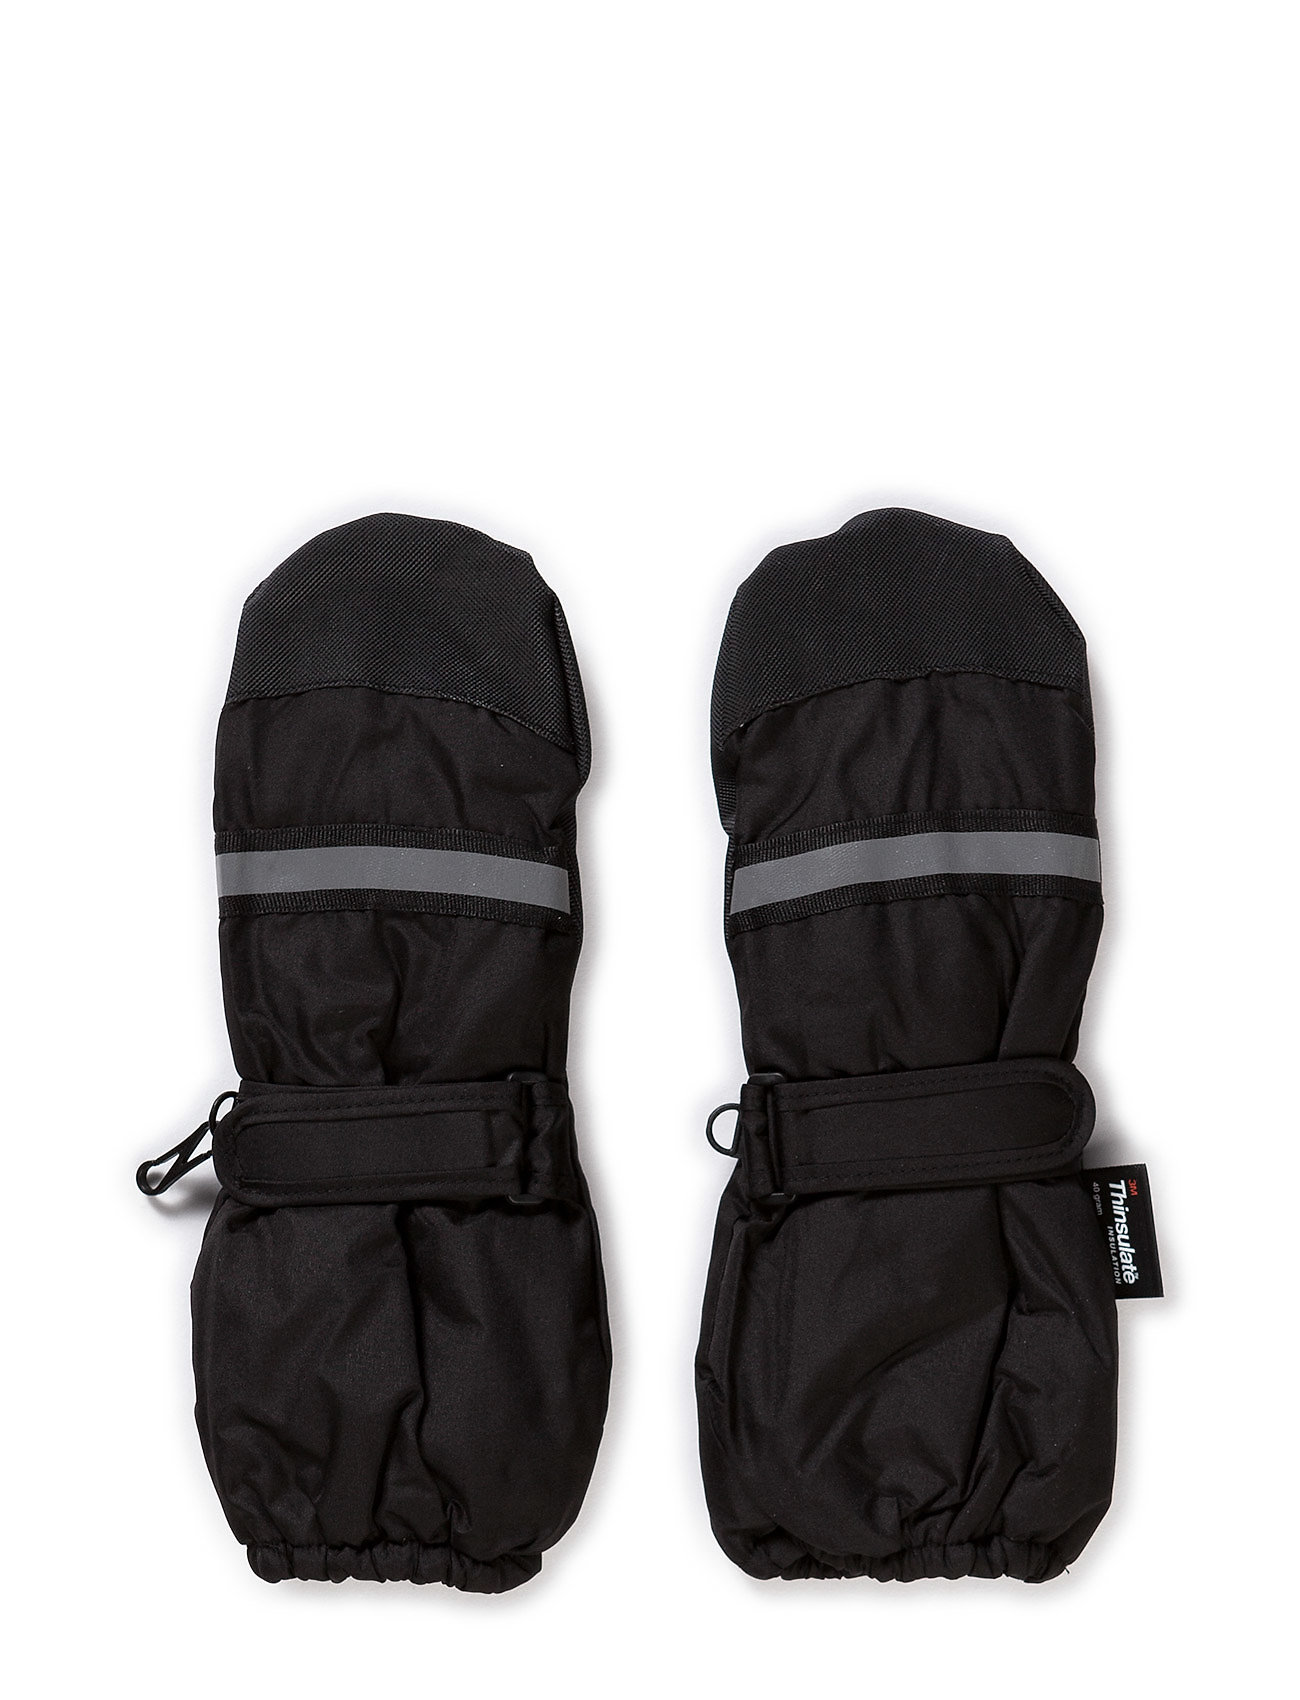 Mikk-Line THINSULATE mittens - BLACK